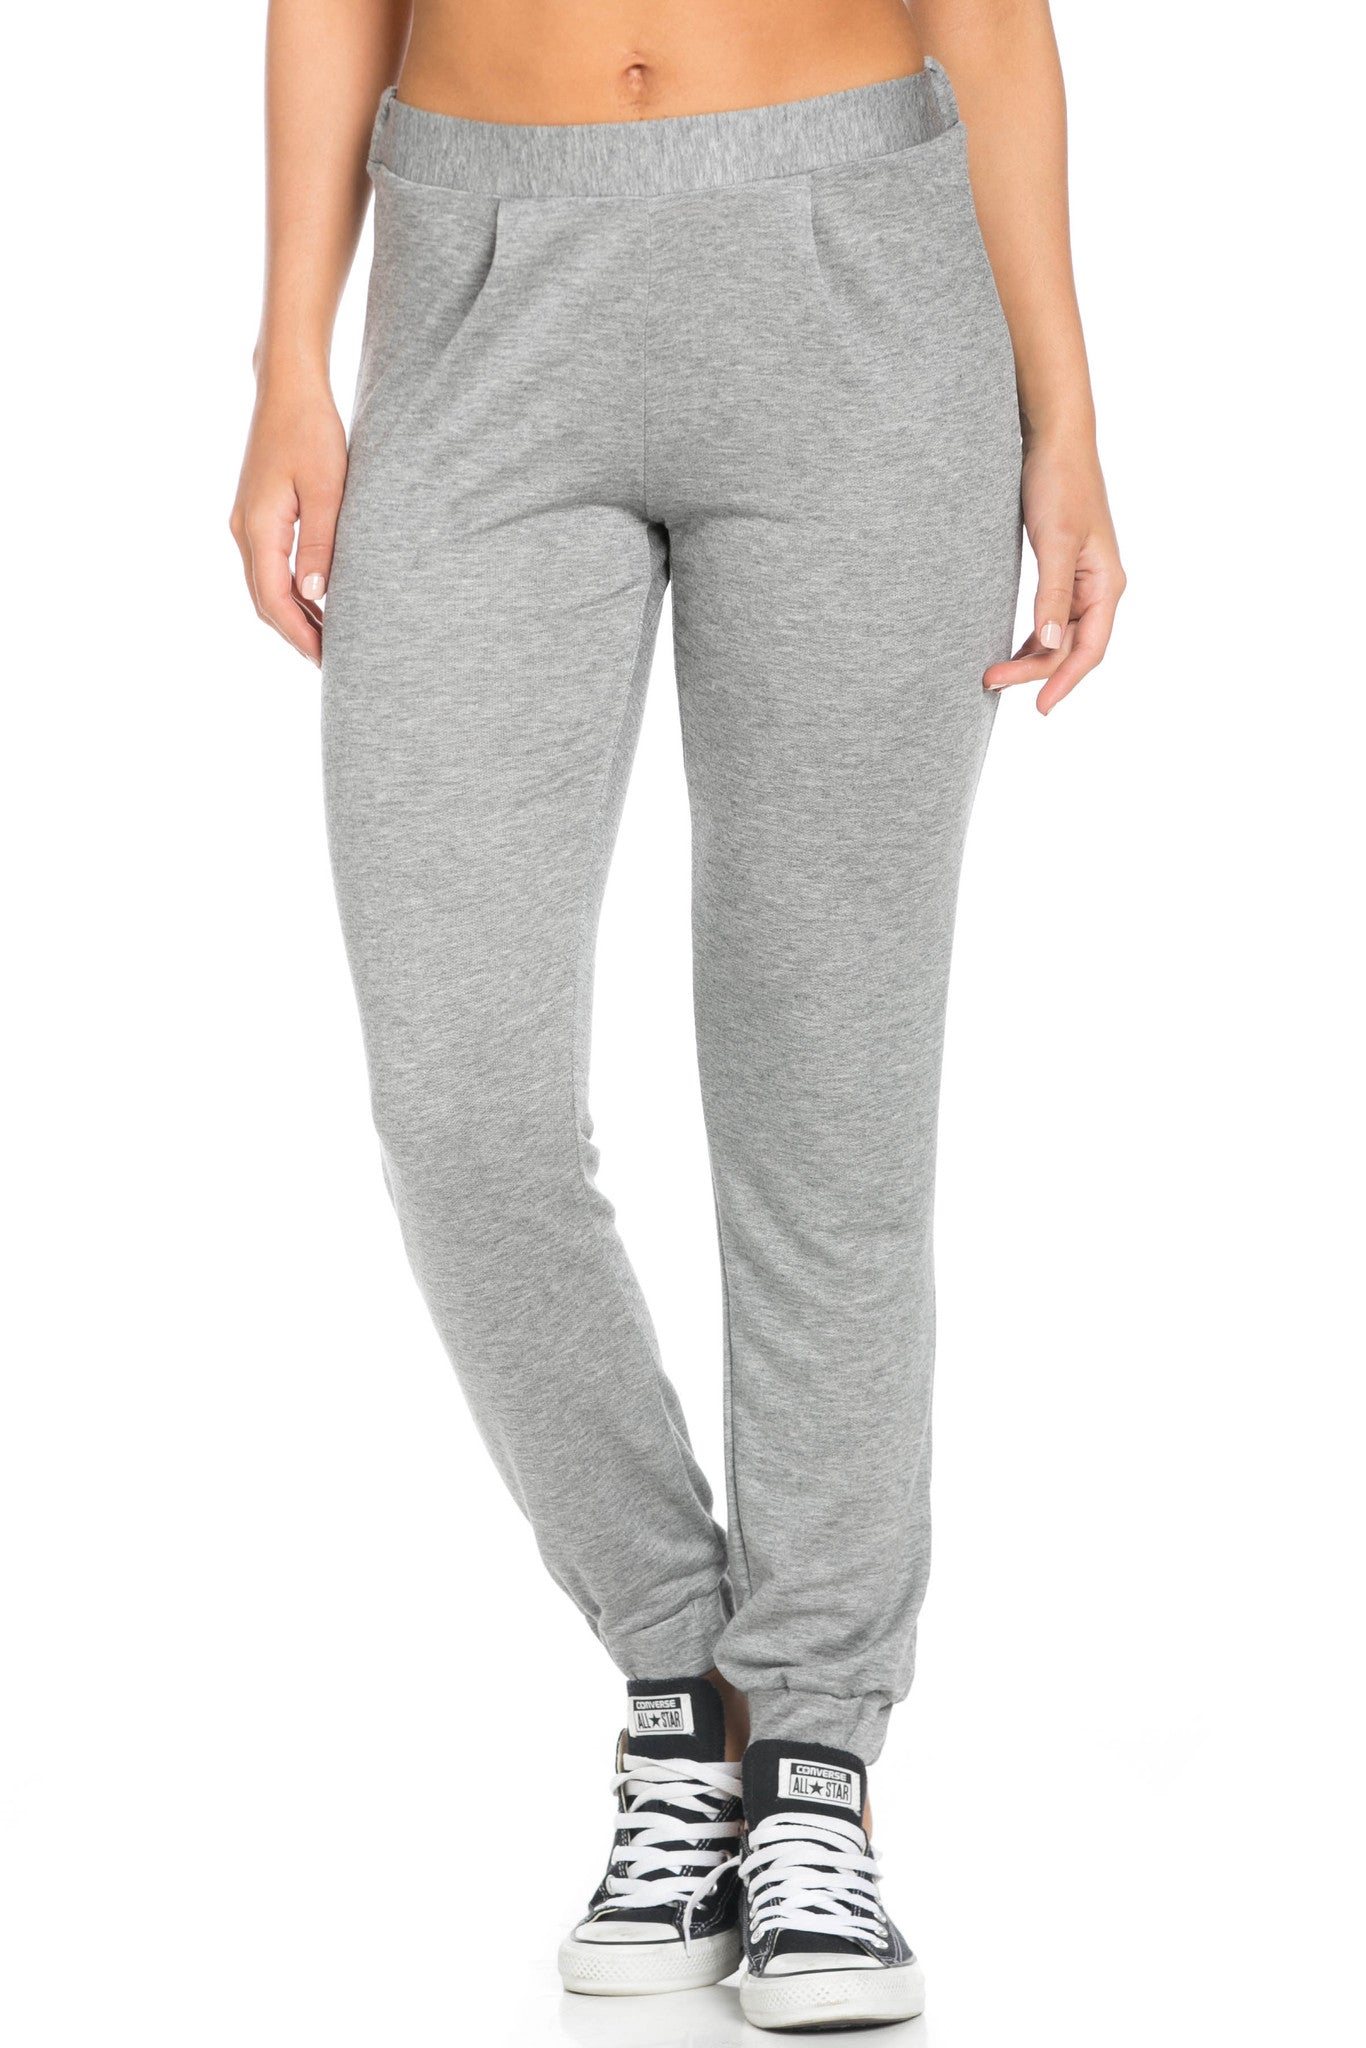 Lightweight Heather Grey Harem Joggers - Jogger Pants - My Yuccie - 6